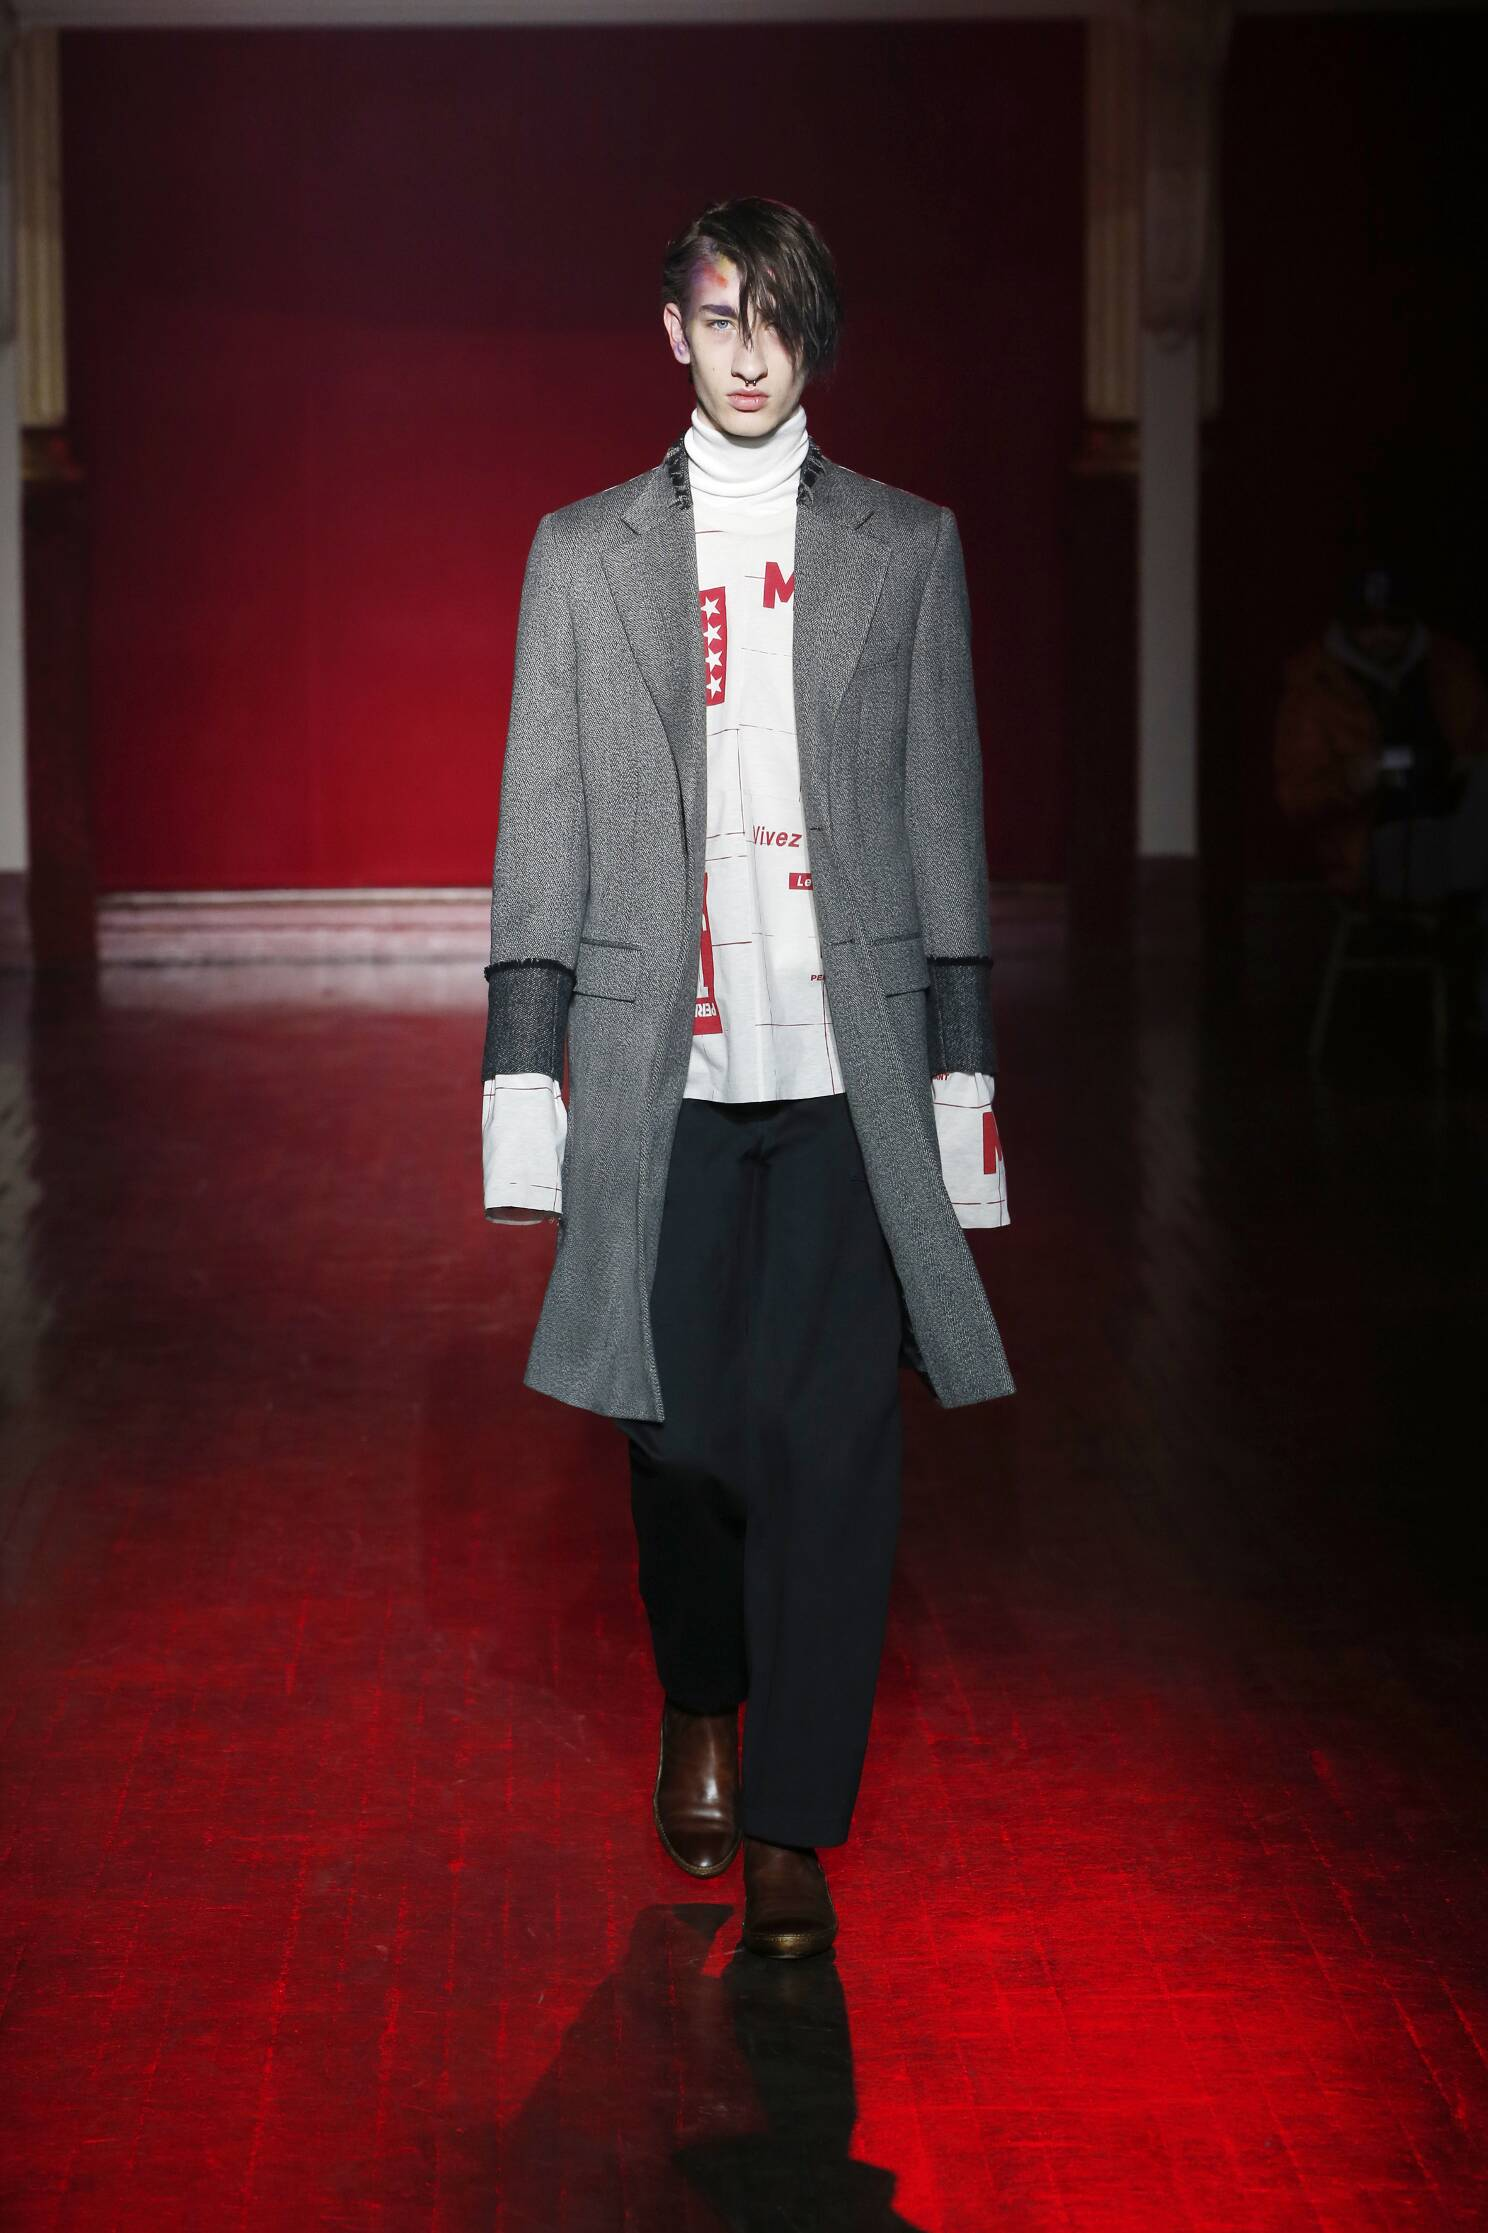 Runway Maison Margiela Fall Winter 2015 16 Men's Collection Paris Fashion Week